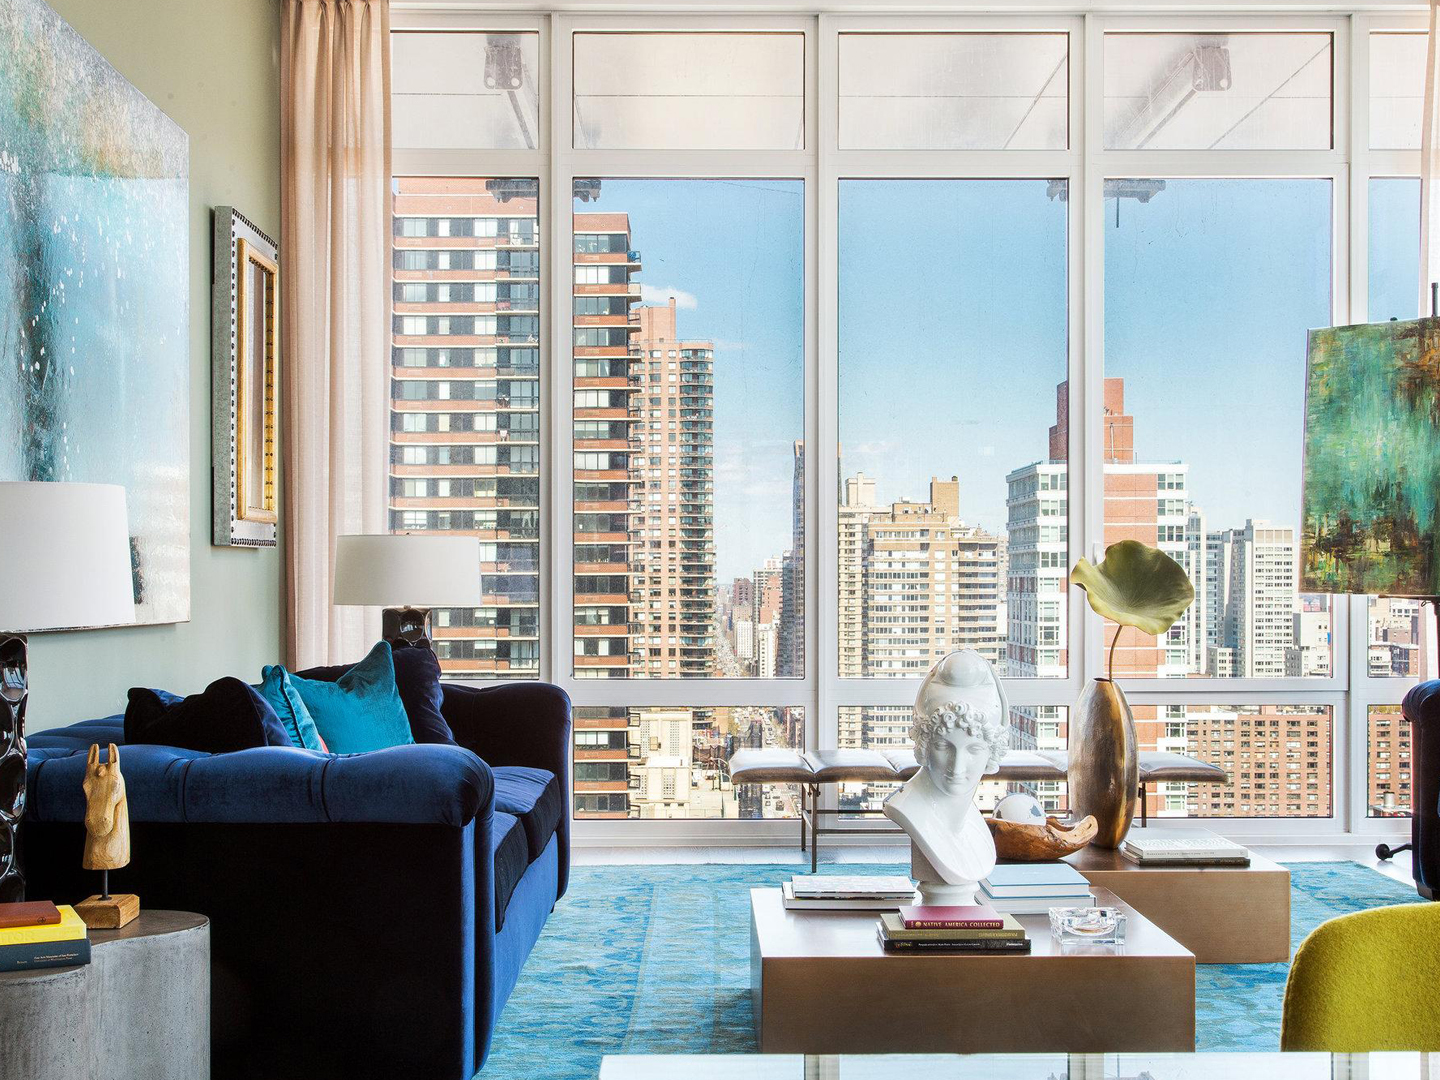 Open House New York pulls back the curtain on 10 striking NYC residences - September 22, 2016 | CurbedOpen House New York will return on October 15 and 16, bringing to view over 250 of the city's most inaccessible and downright cool sites and interiors …Read More